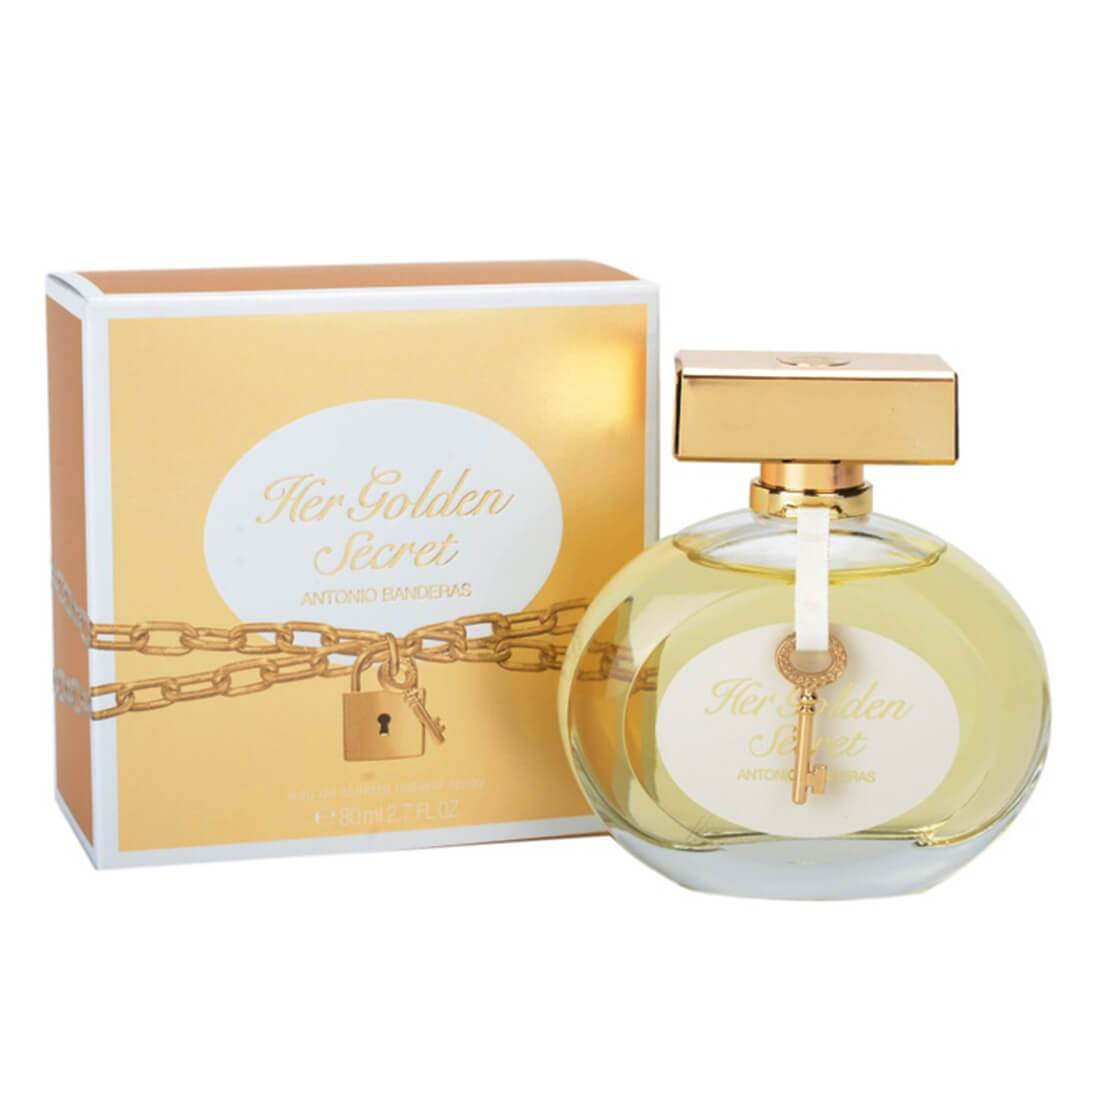 Antonio Banderas Golden Secret For Women Perfume EDT - 80ml